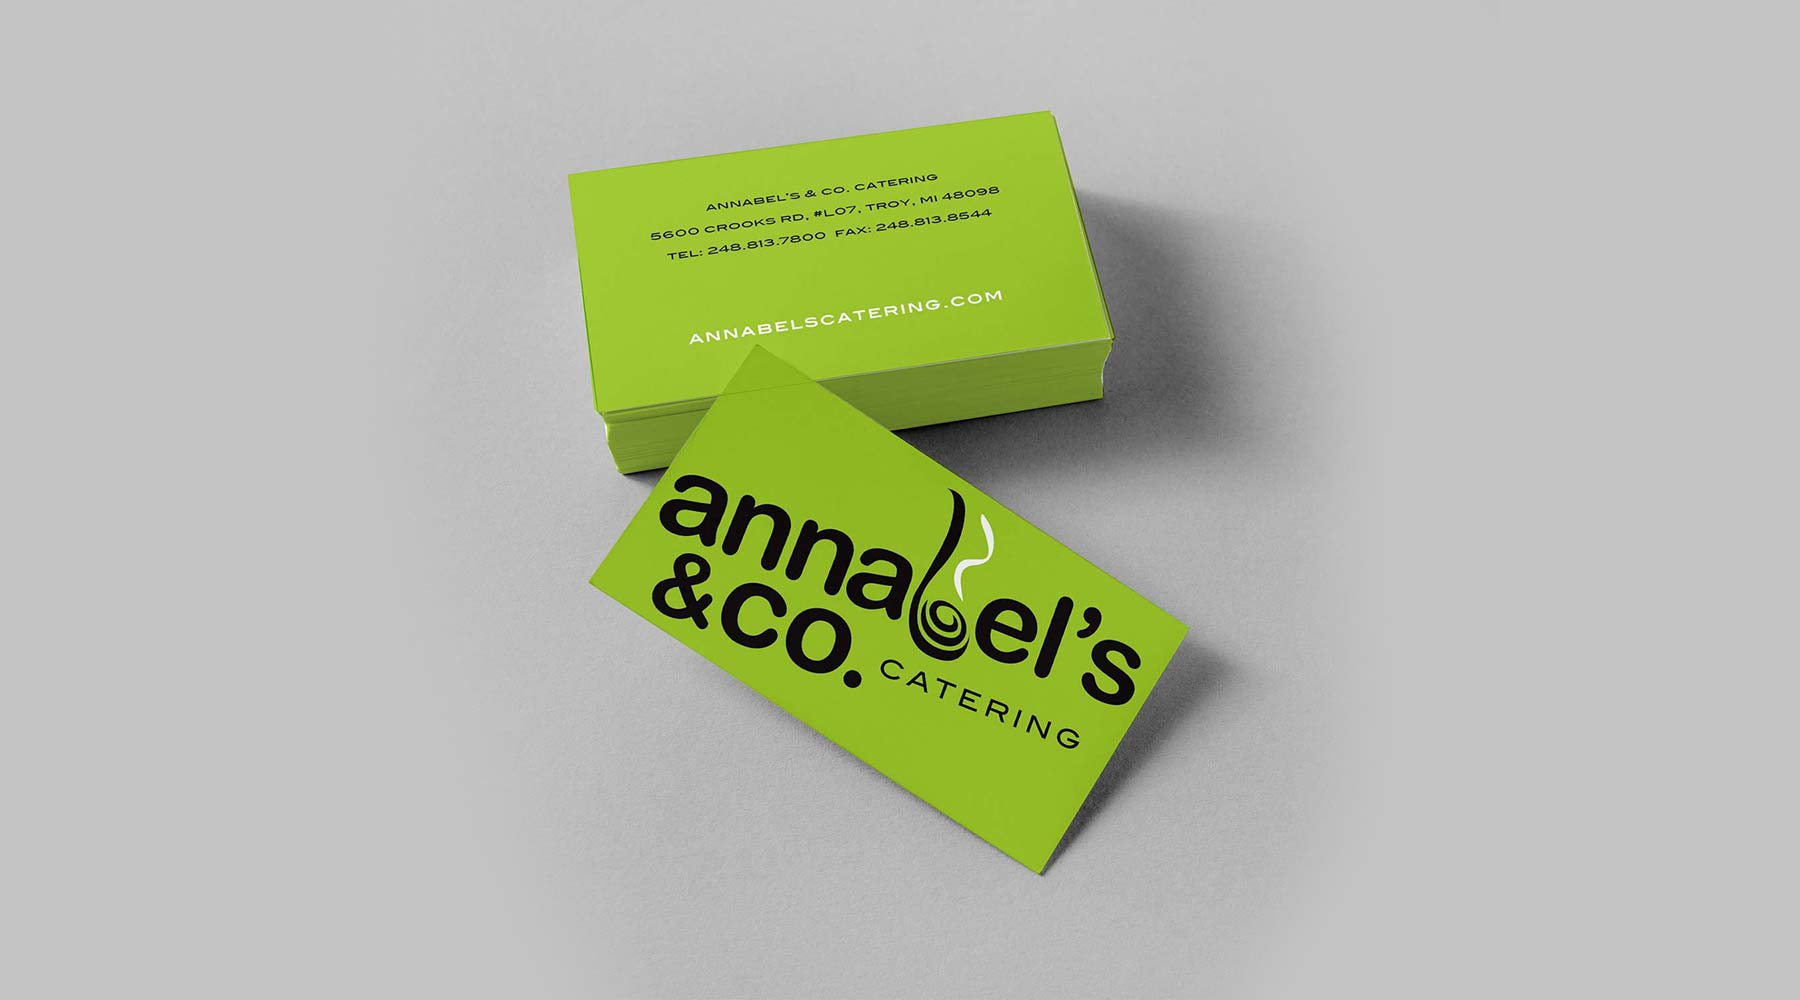 Annabel's & Co 1